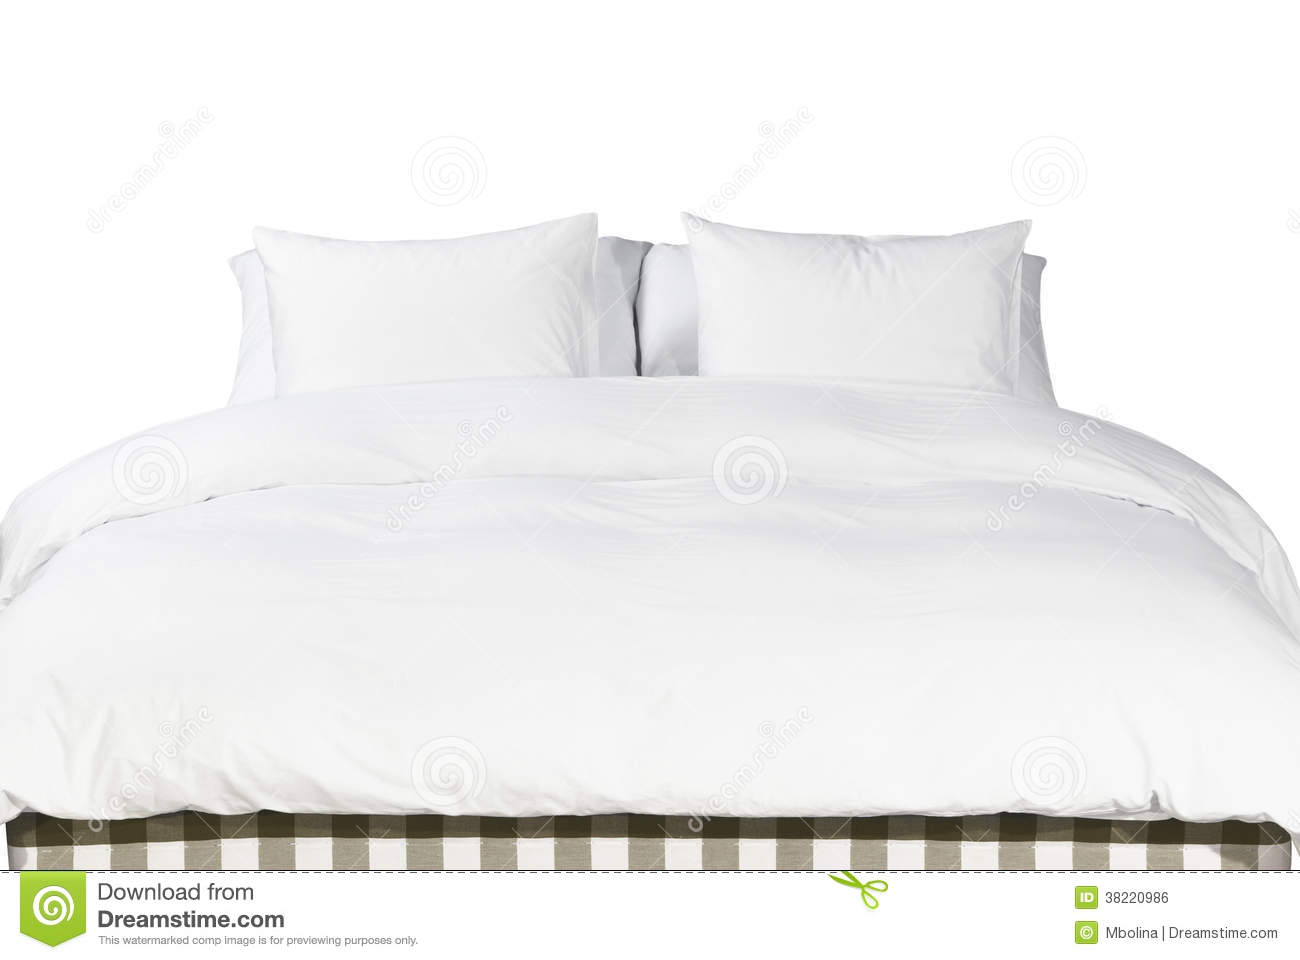 Pillows On Bed Stock Photography 86500544